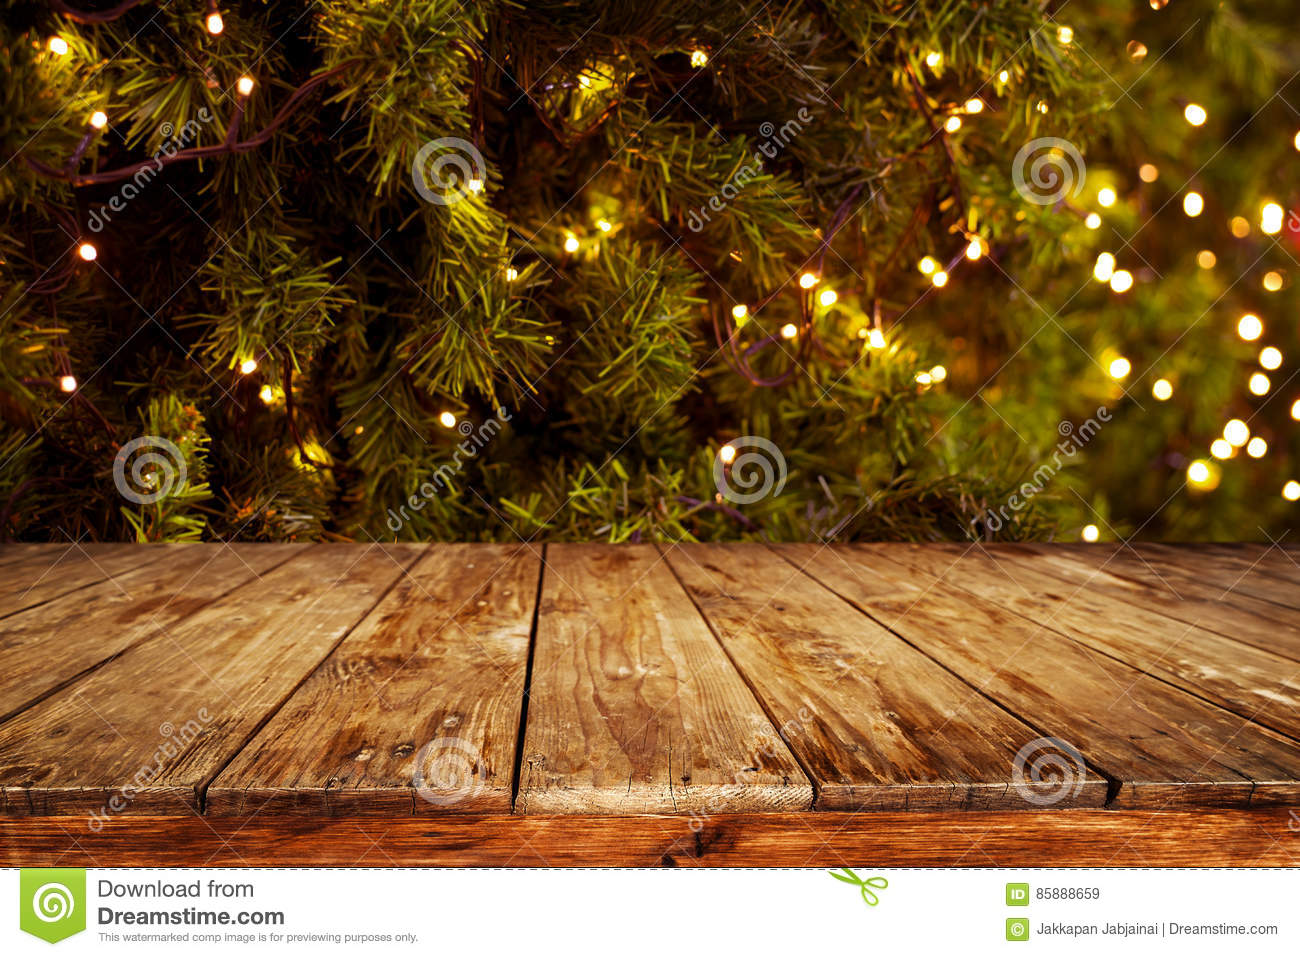 Christmas and new year background with empty dark wooden deck table download christmas and new year background with empty dark wooden deck table over christmas tree and aloadofball Gallery